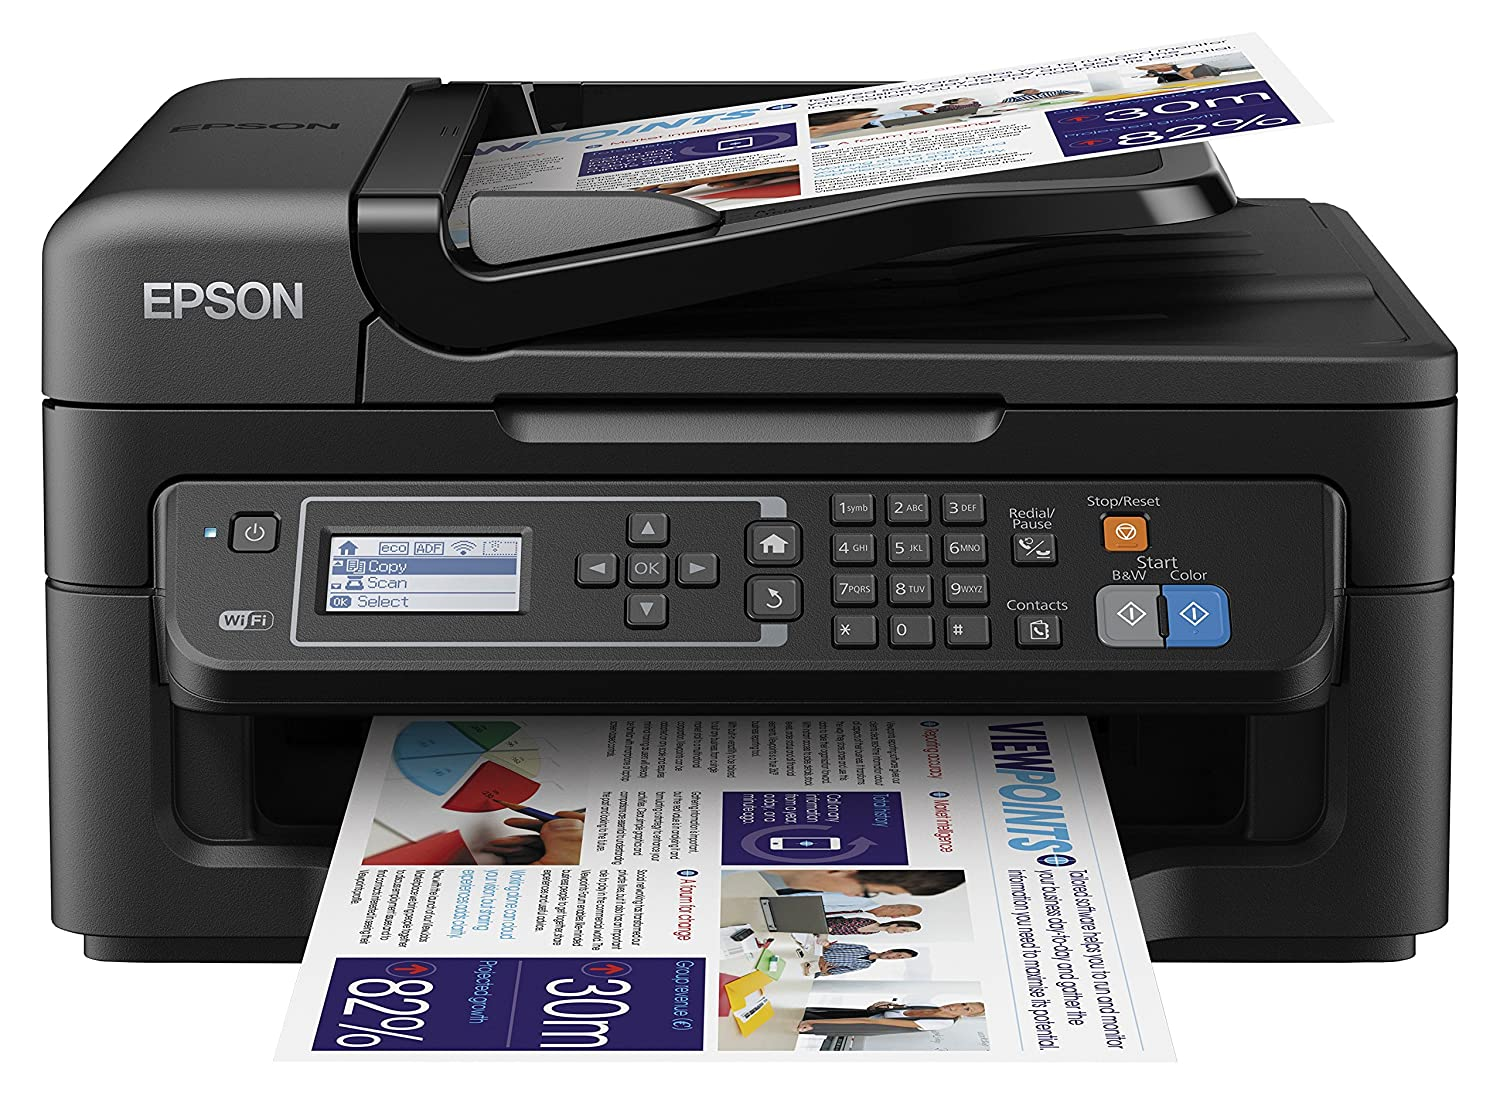 Epson WorkForce WF-2630WF Stampante Multifunzione a Getto d'Inchiostro C11CE36402 copiatore copier espon